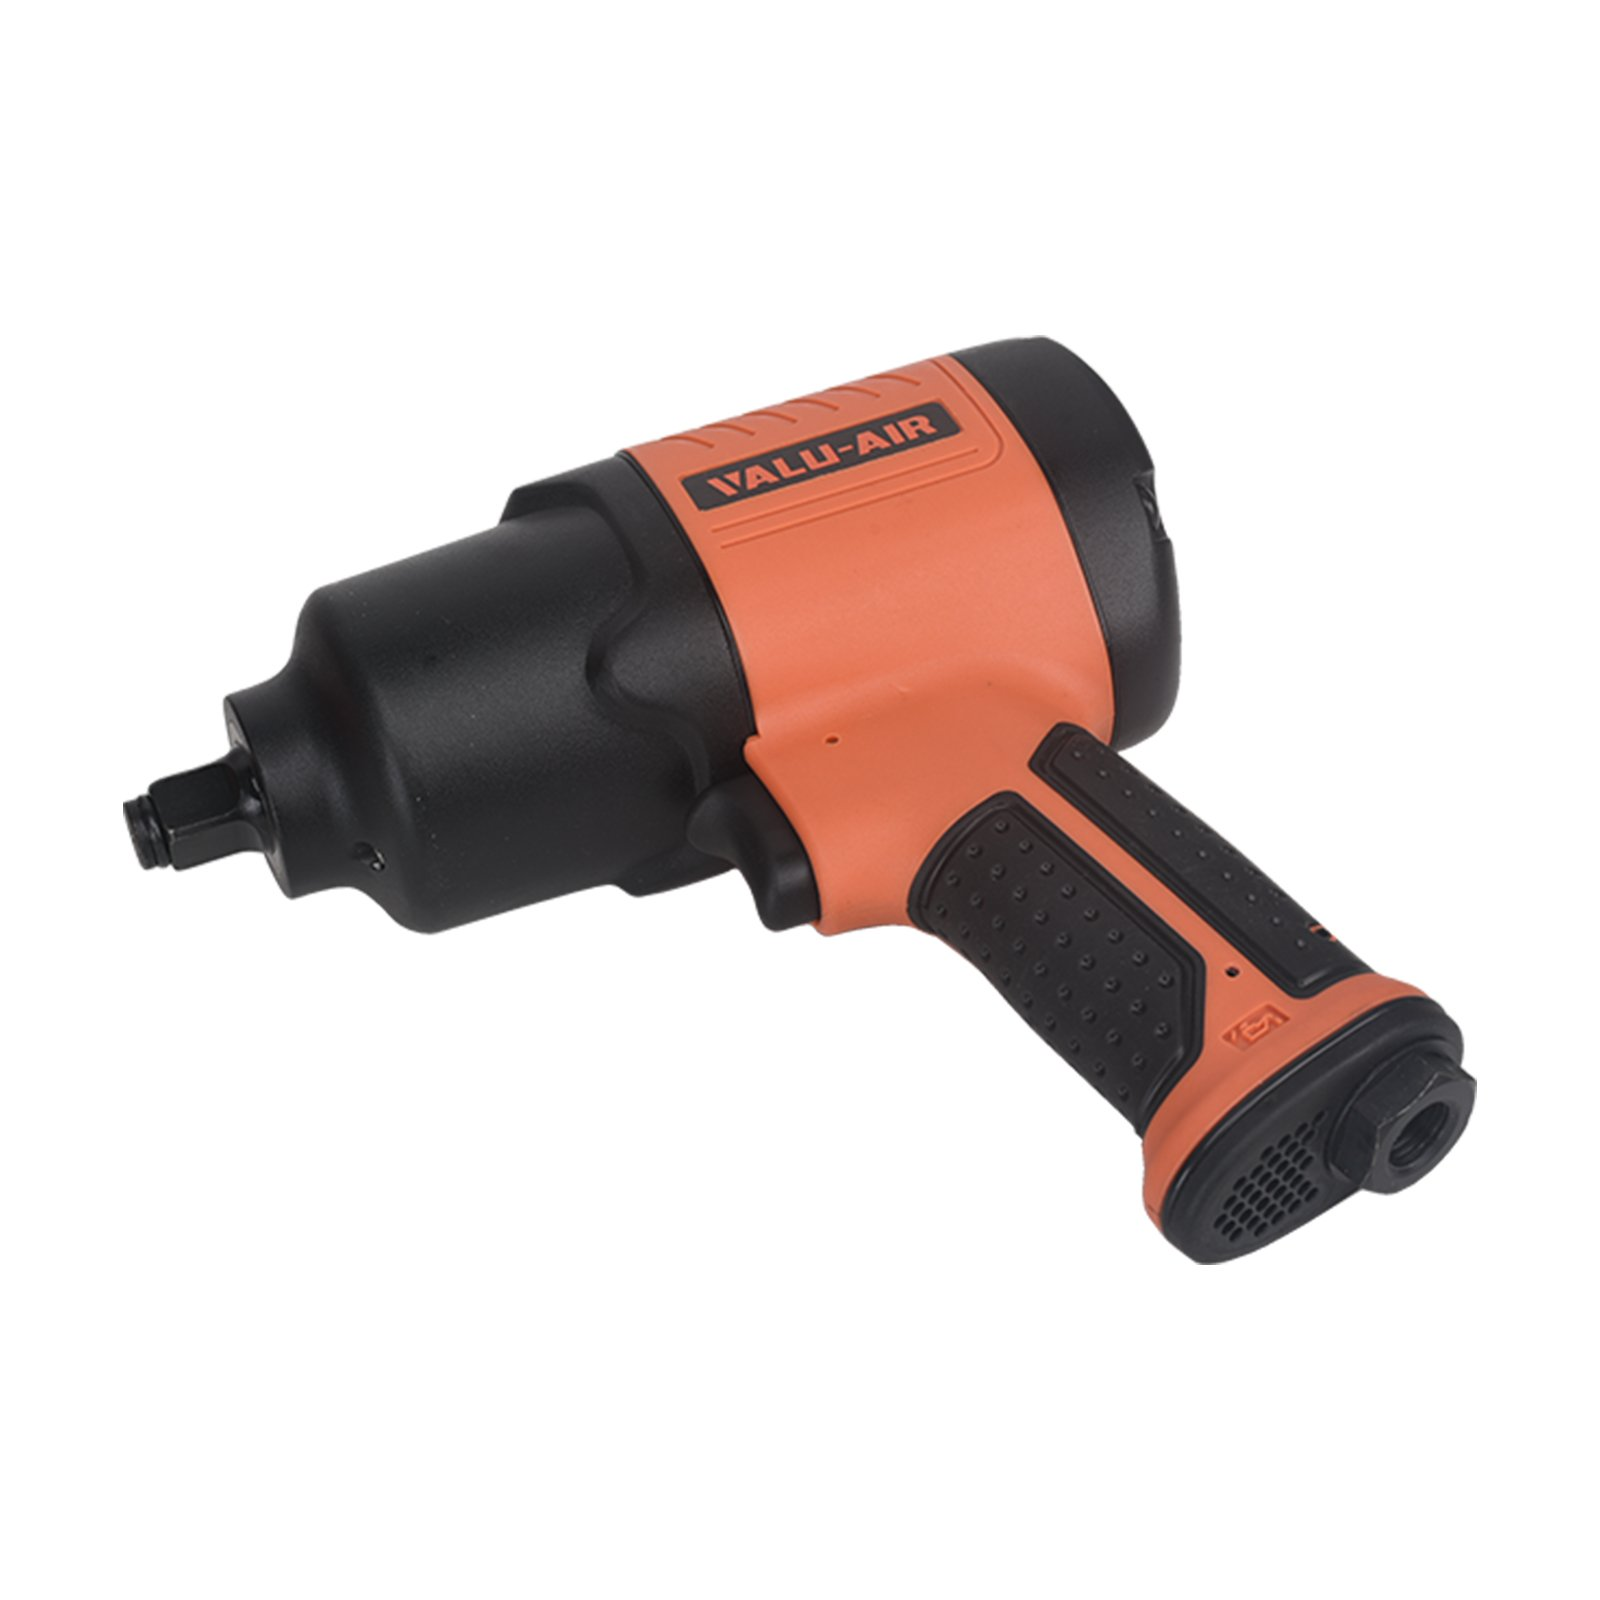 Valu-Air RP17407 1/2 Twin Hammer Air Impact Wrench by Valu-Air (Image #3)